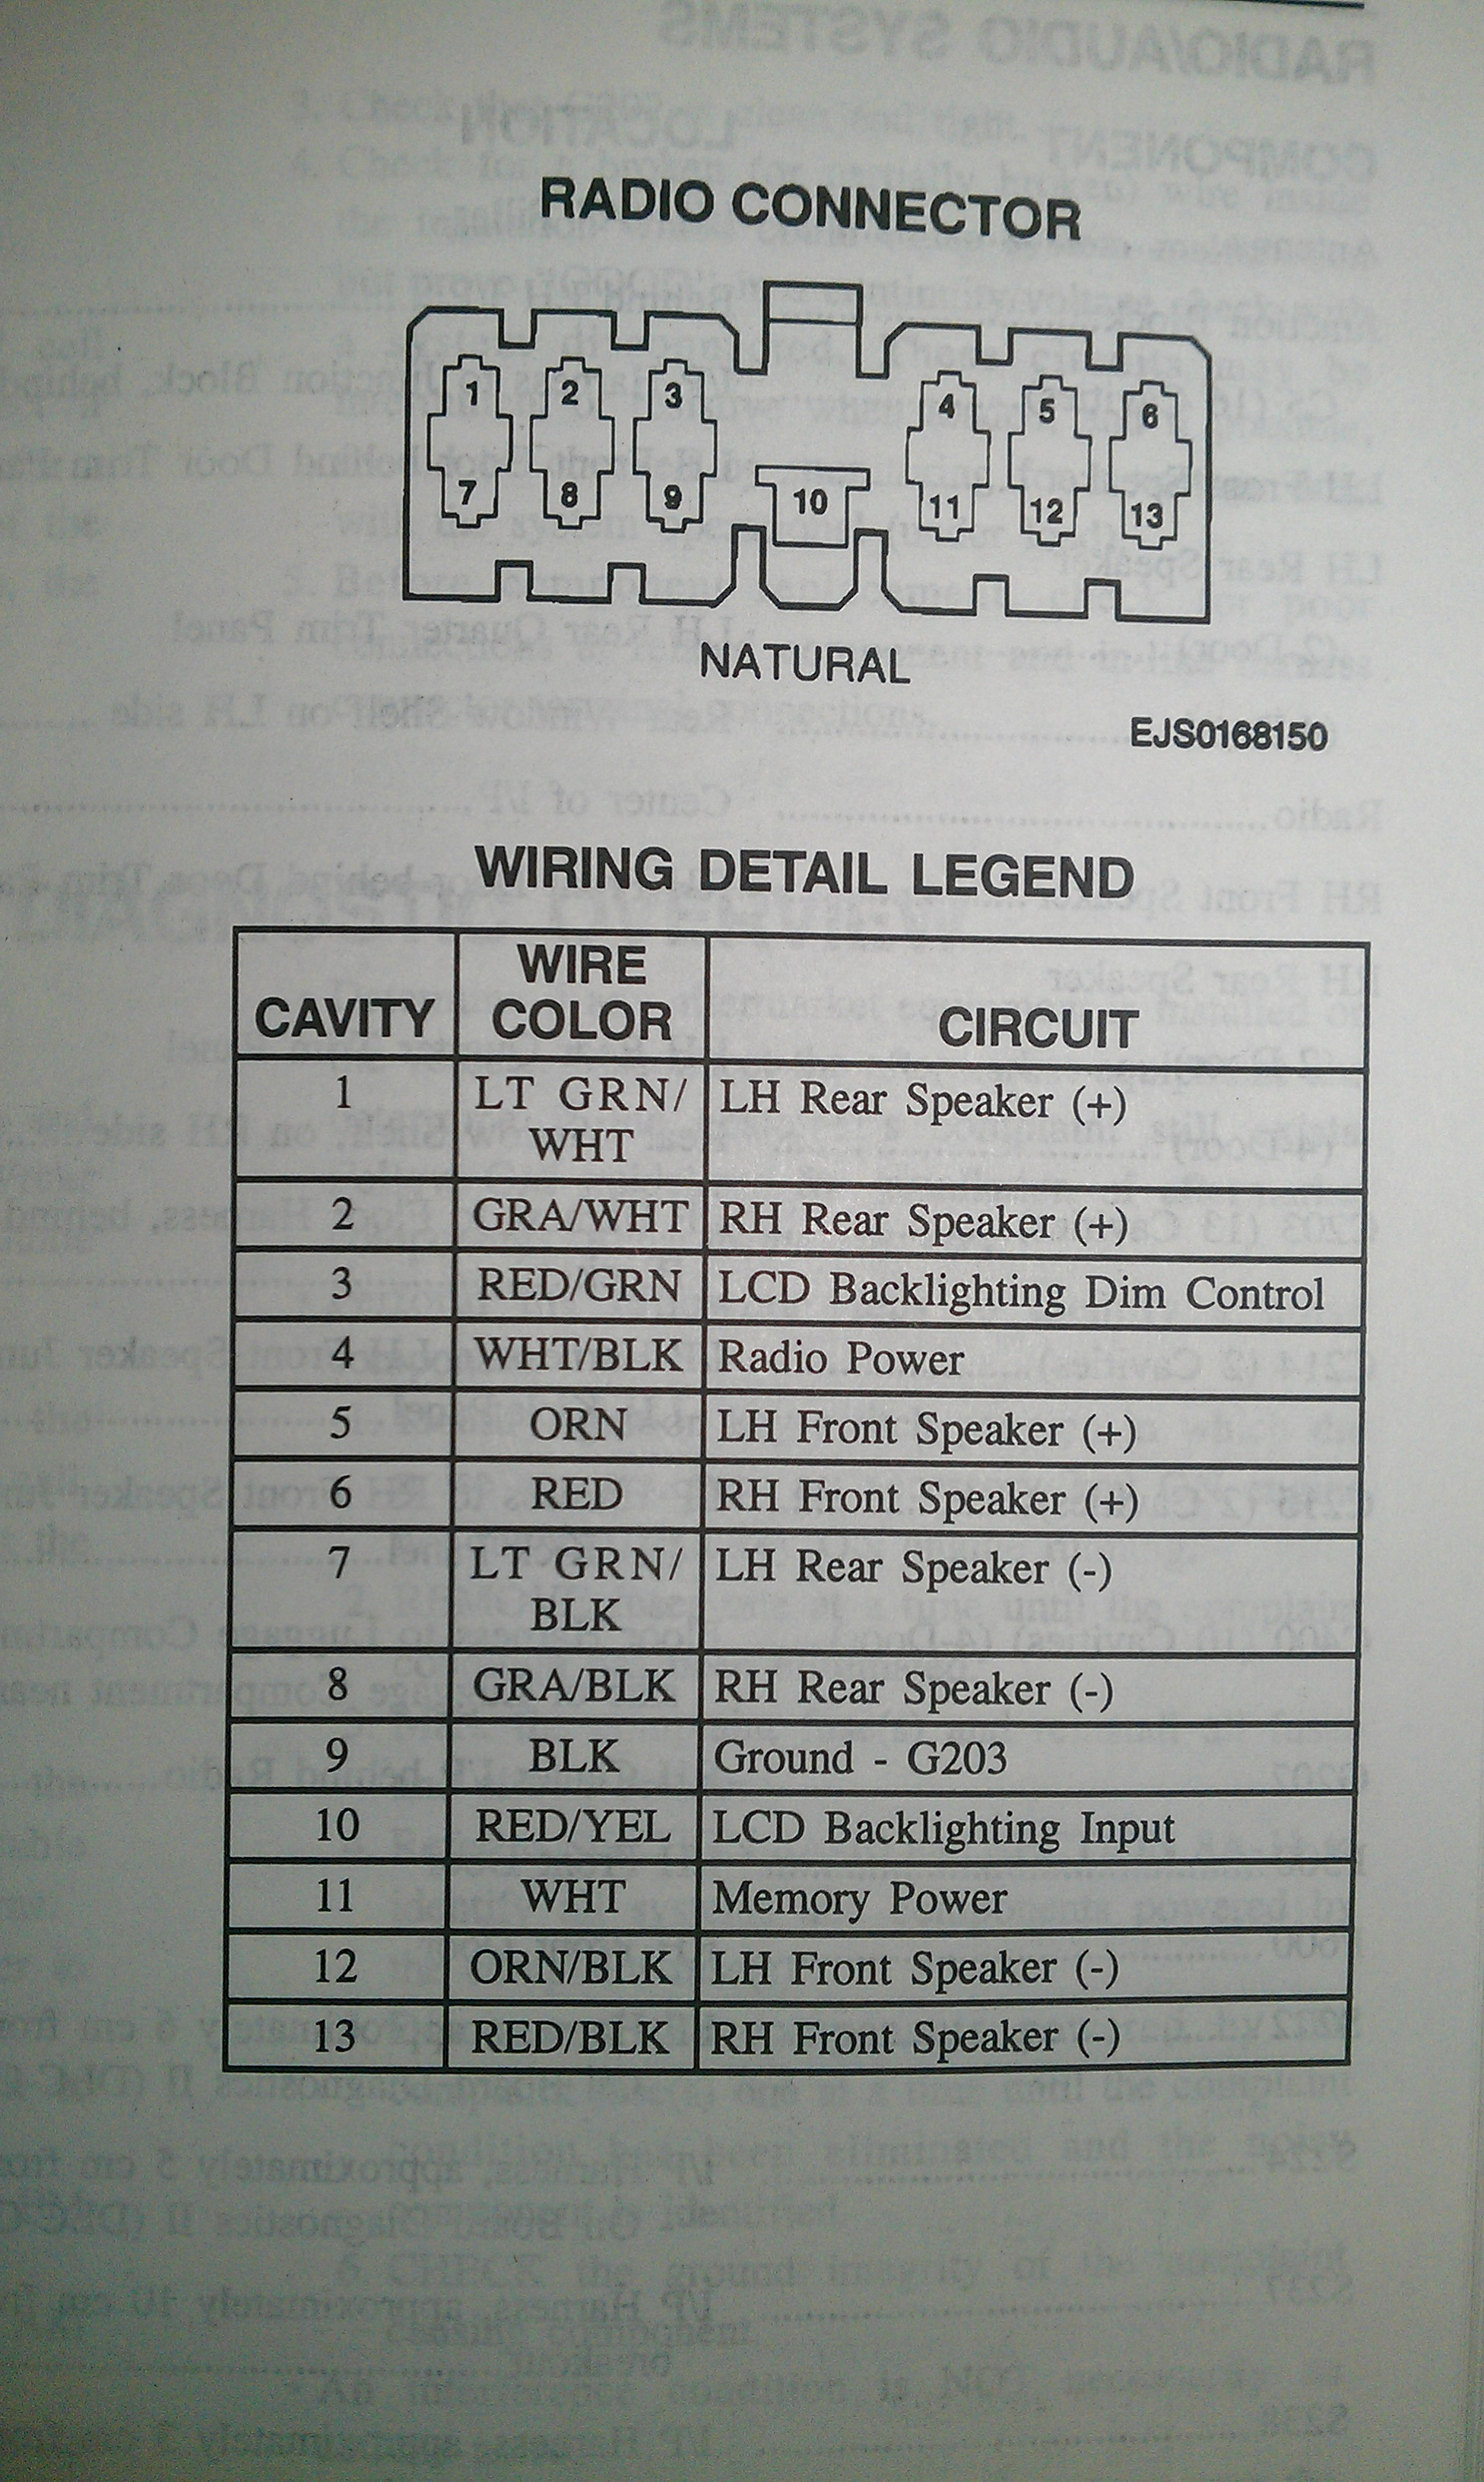 10788004324_6f73ce0165_o radio wiring 2000 chevy metro radio wiring diagram at readyjetset.co